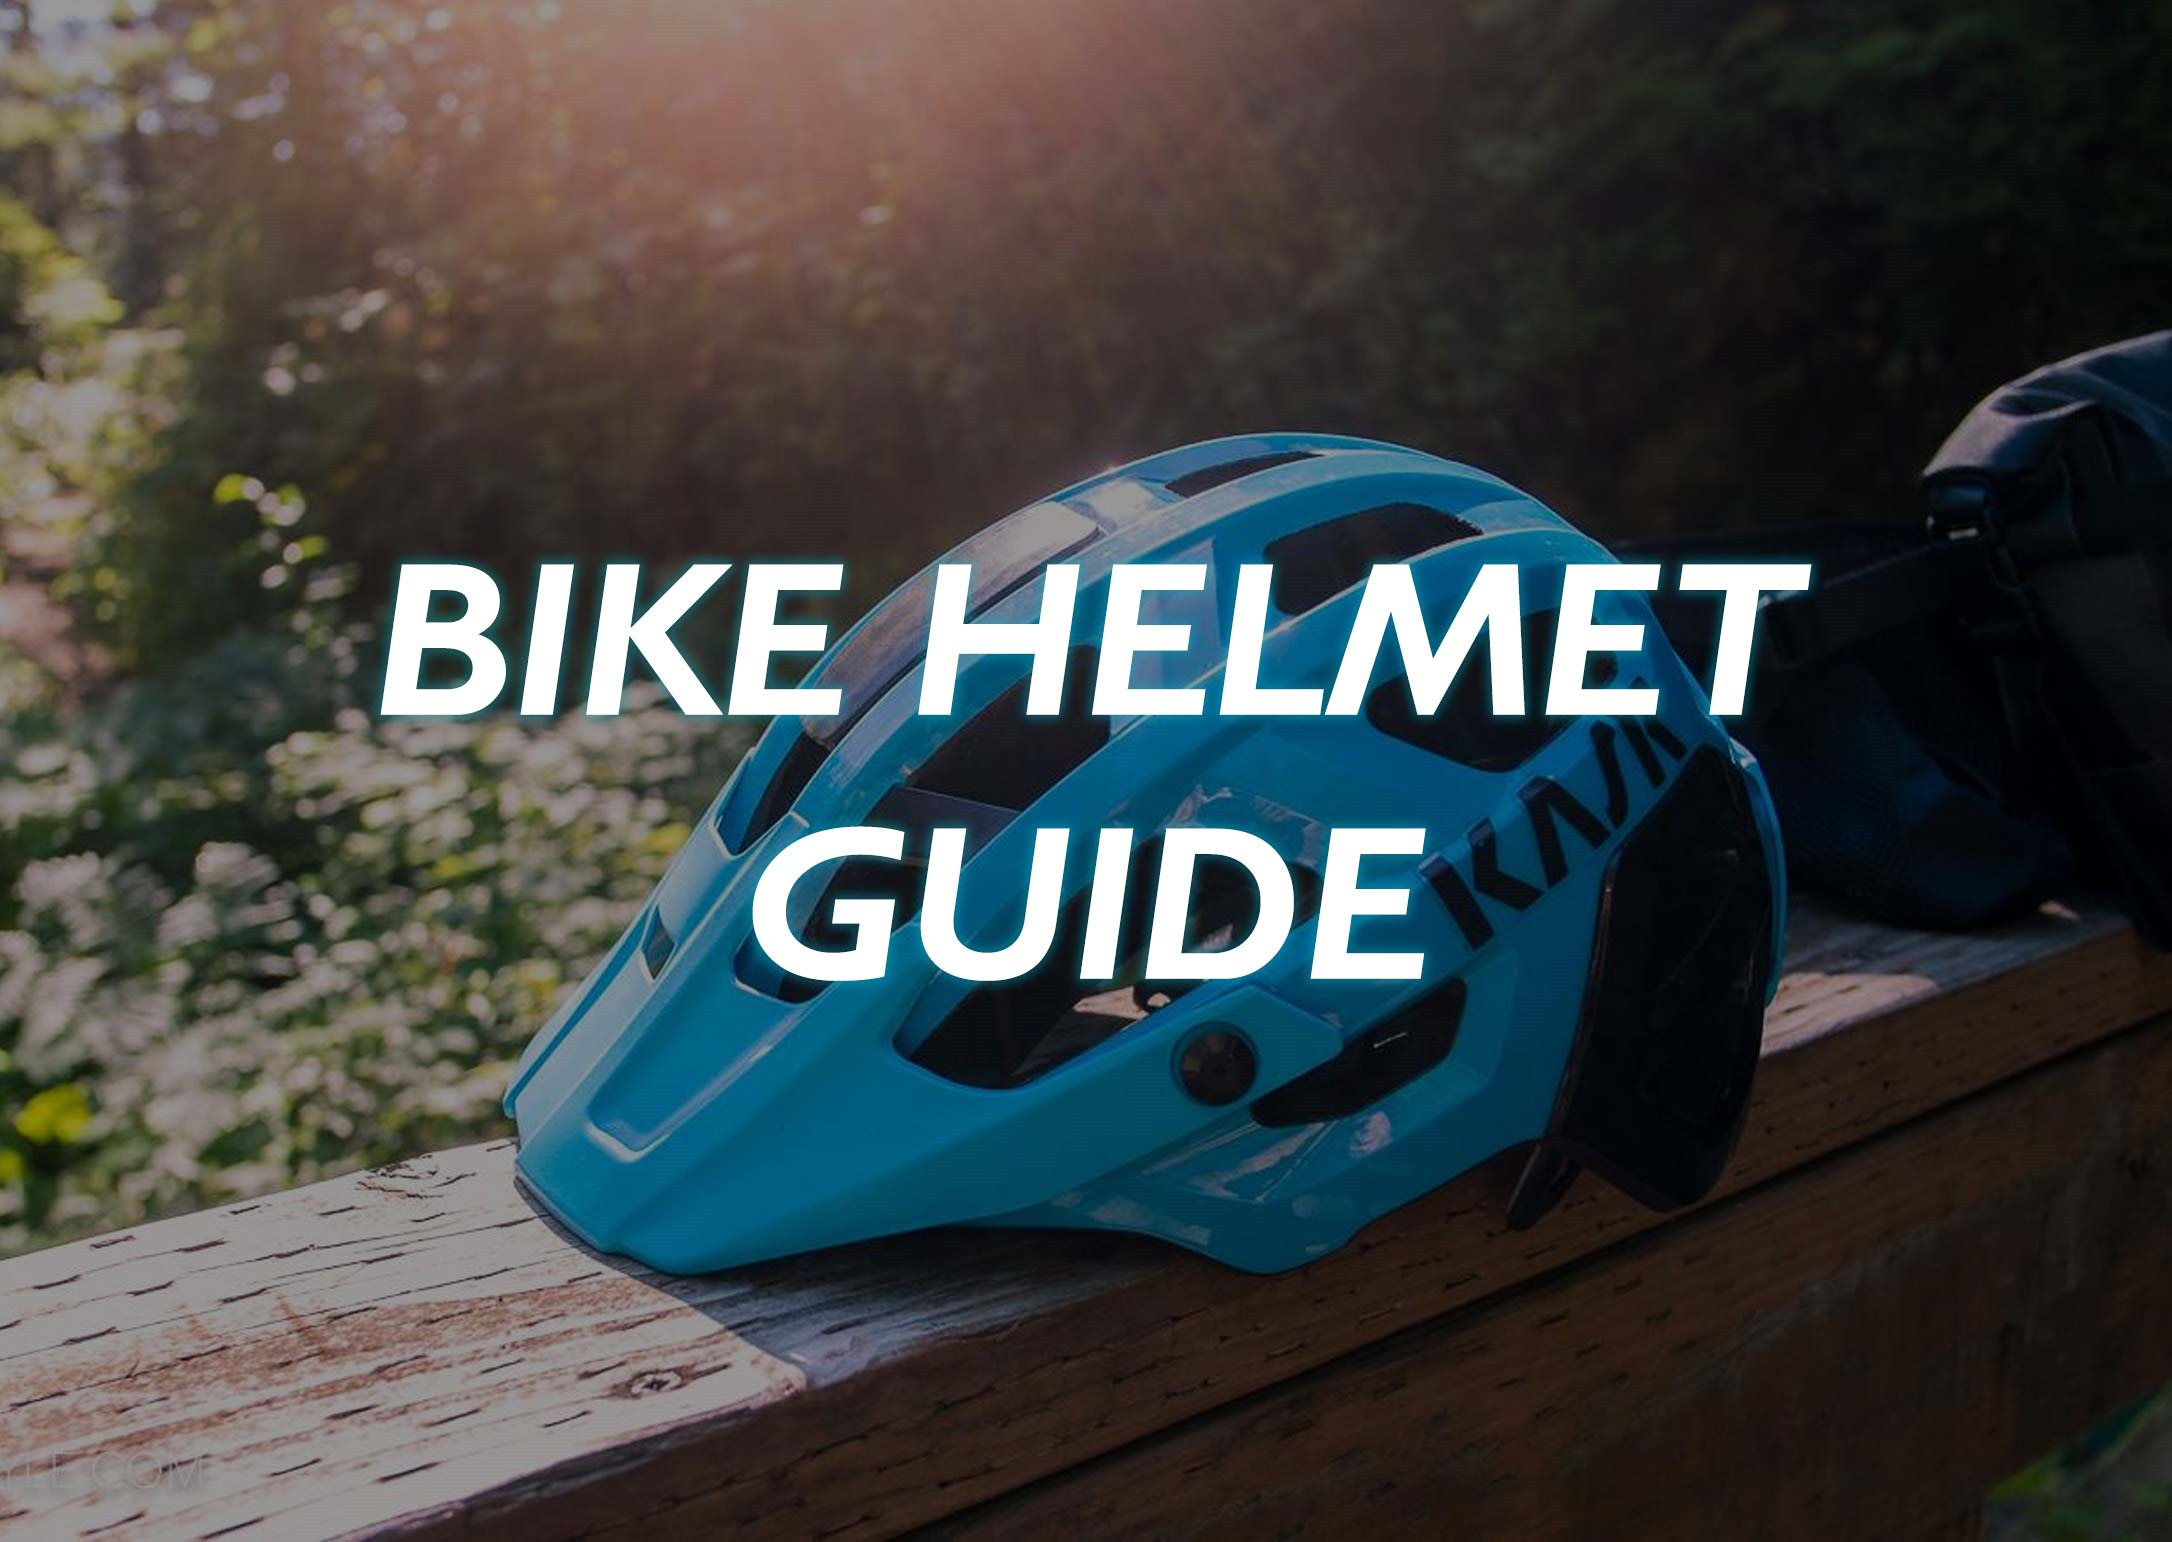 bike-helmet-guide-tile